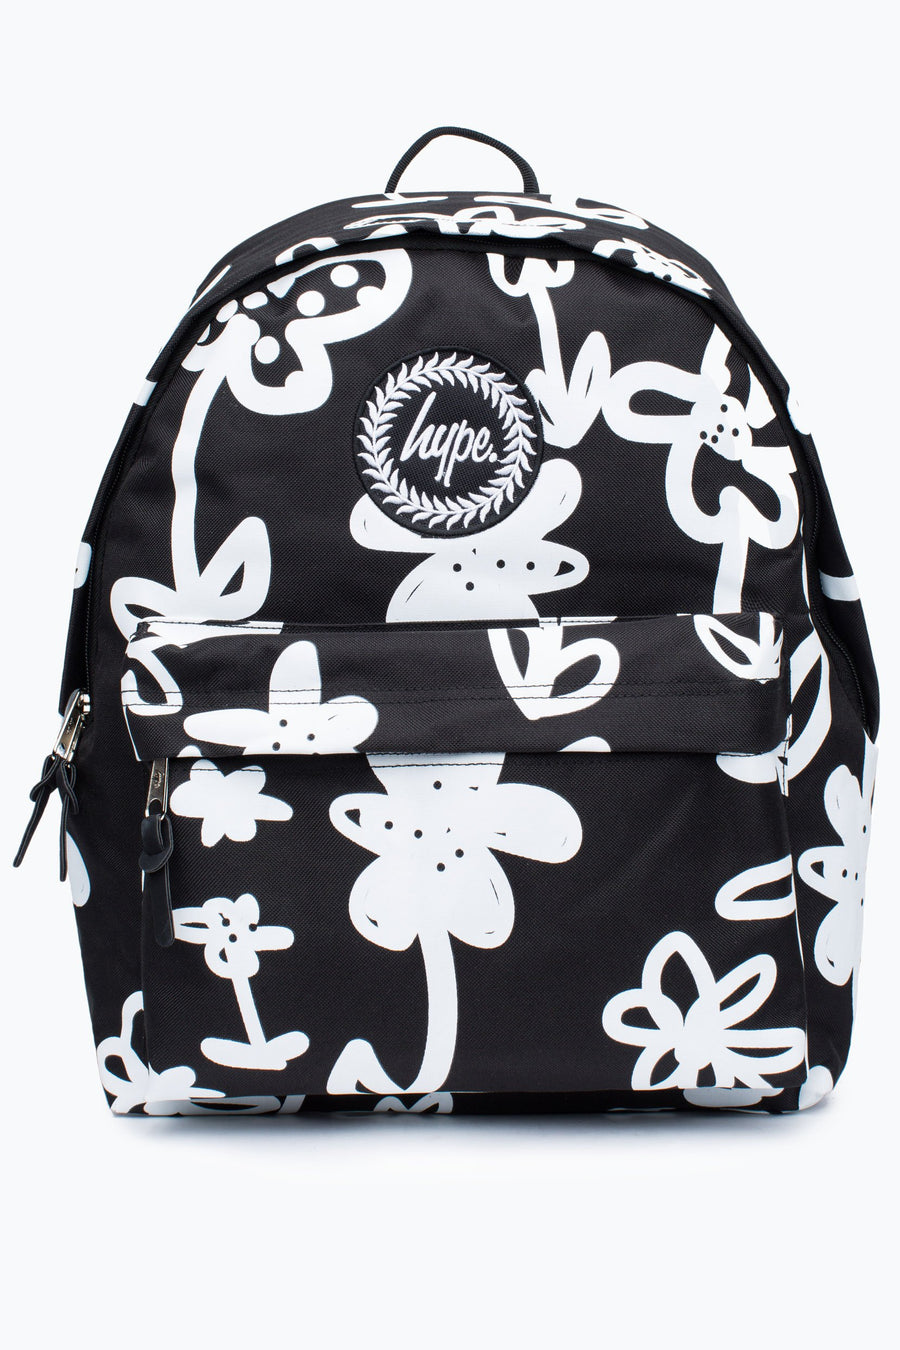 e46fb0e6 HYPE Black Sporting Justhype Backpack - Justhype.no